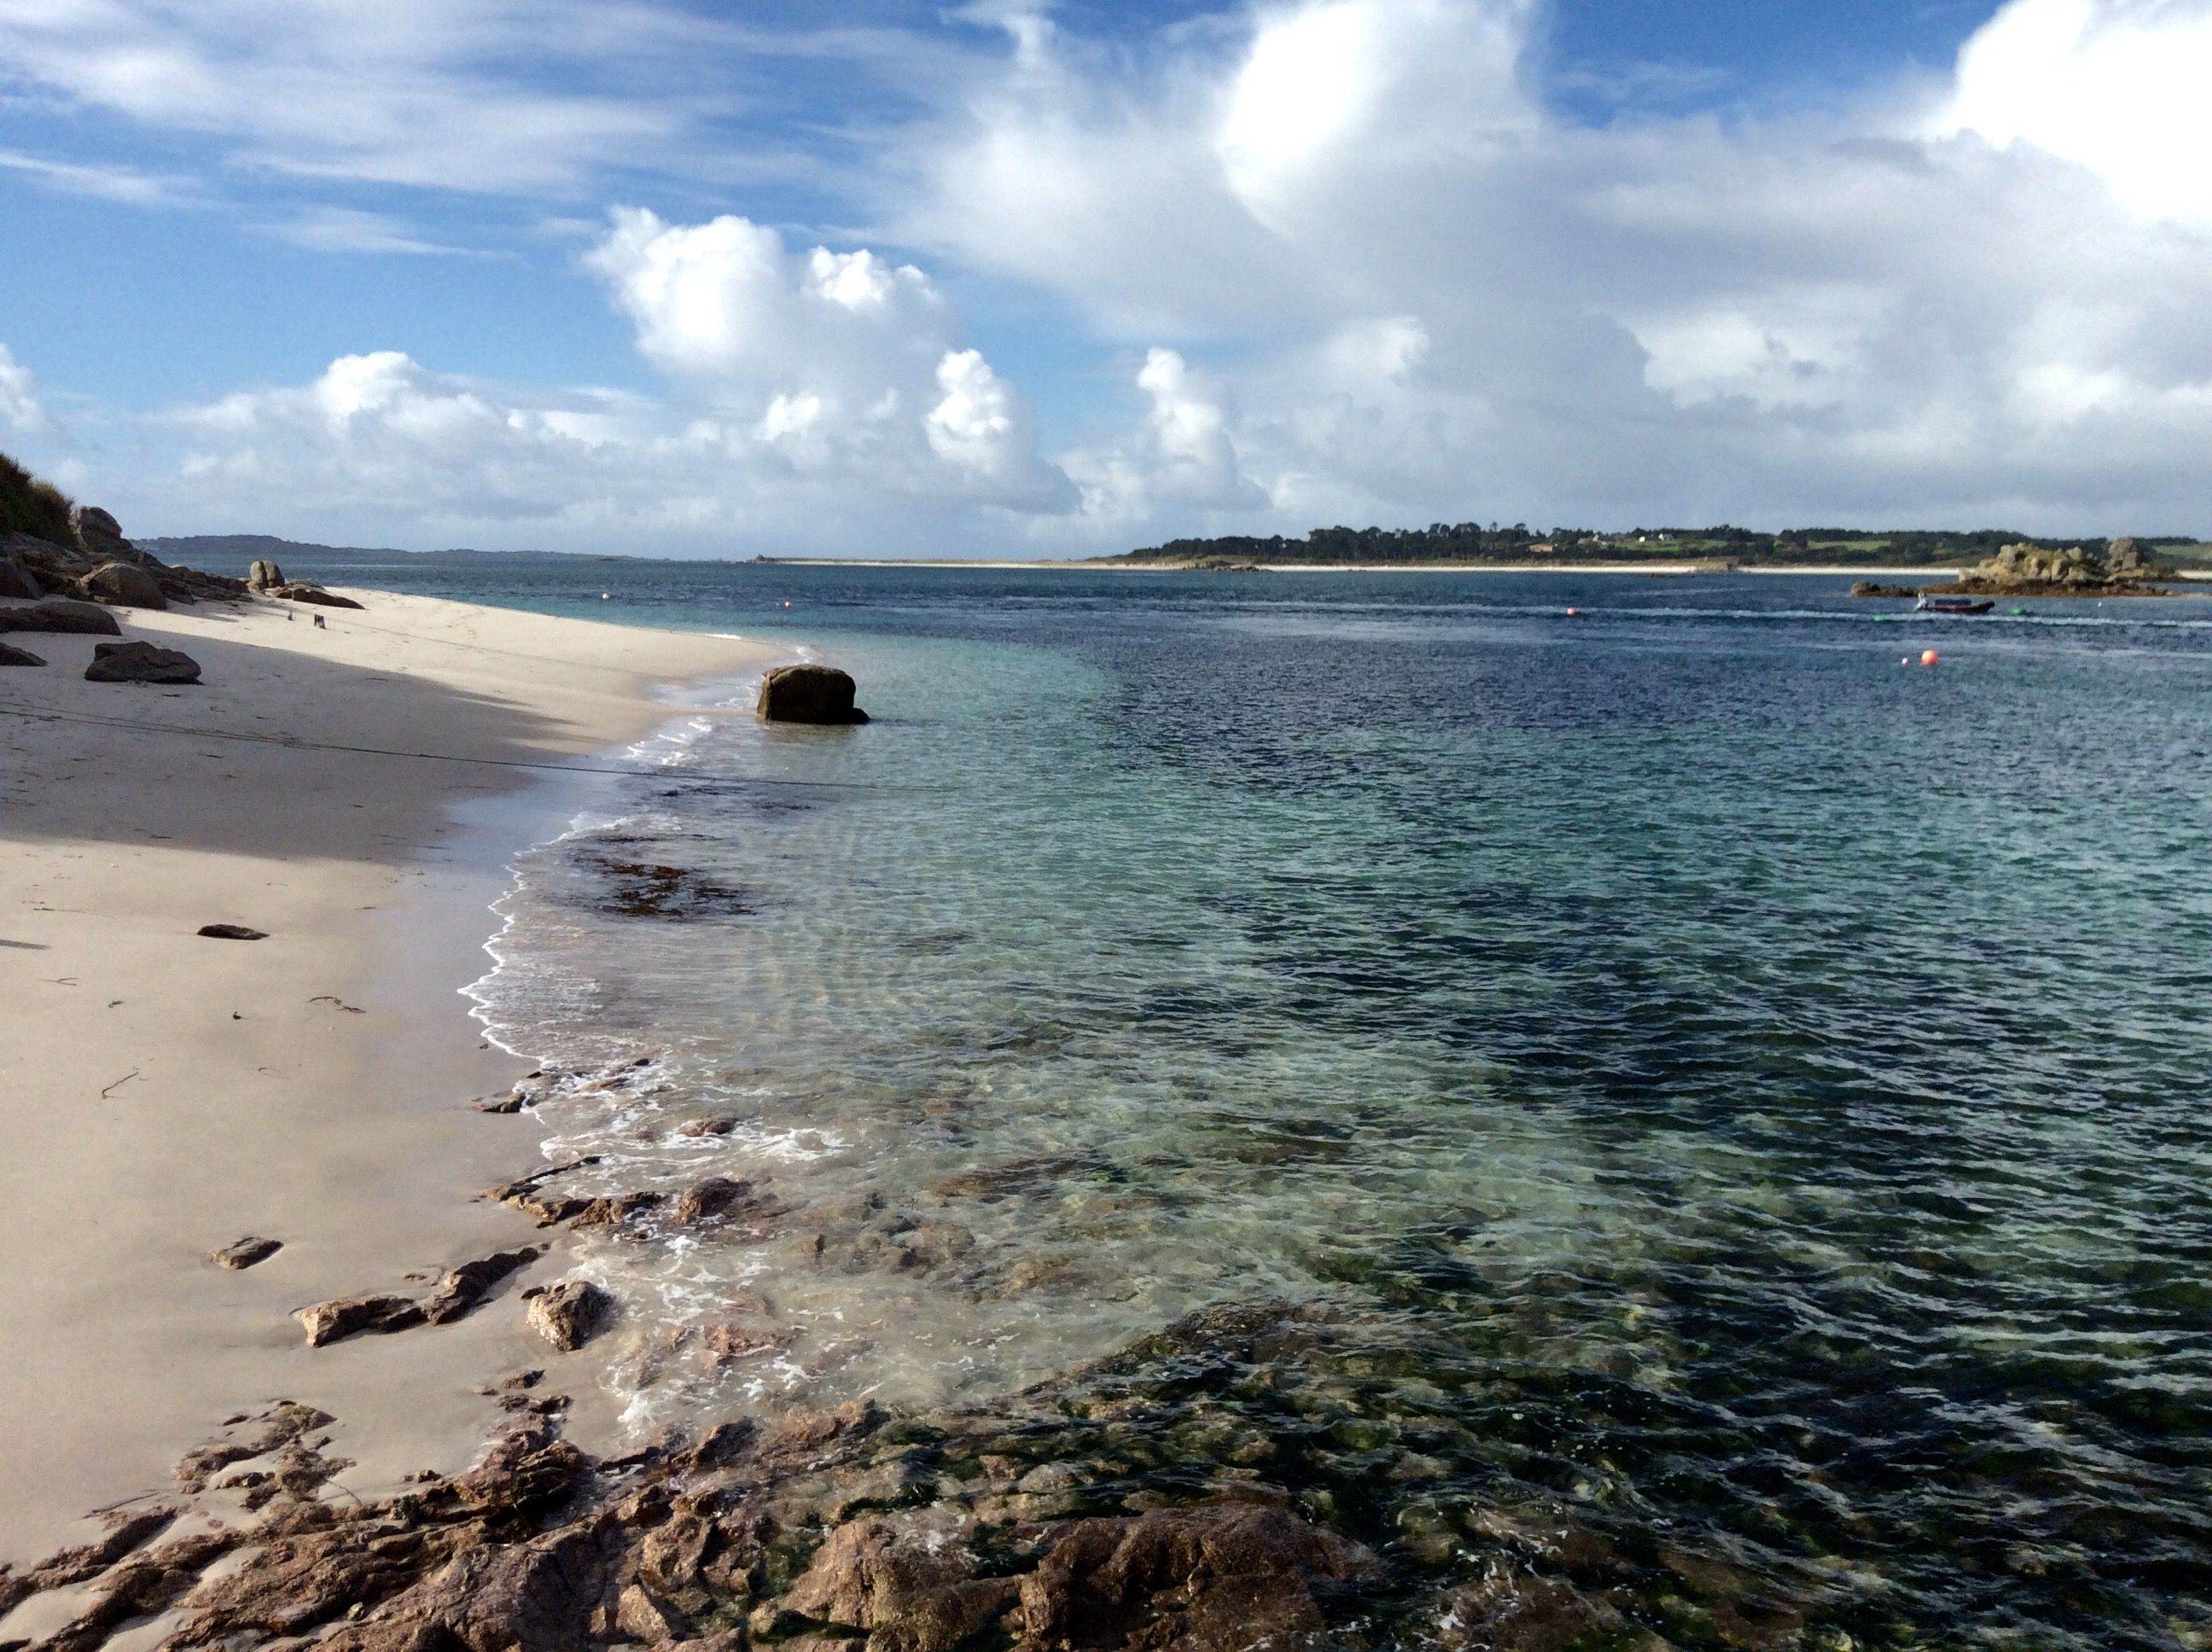 From Karma Hotel the #beach outside the window. St Martins island - Isles of Scilly Dreamy, pure, a paradise!